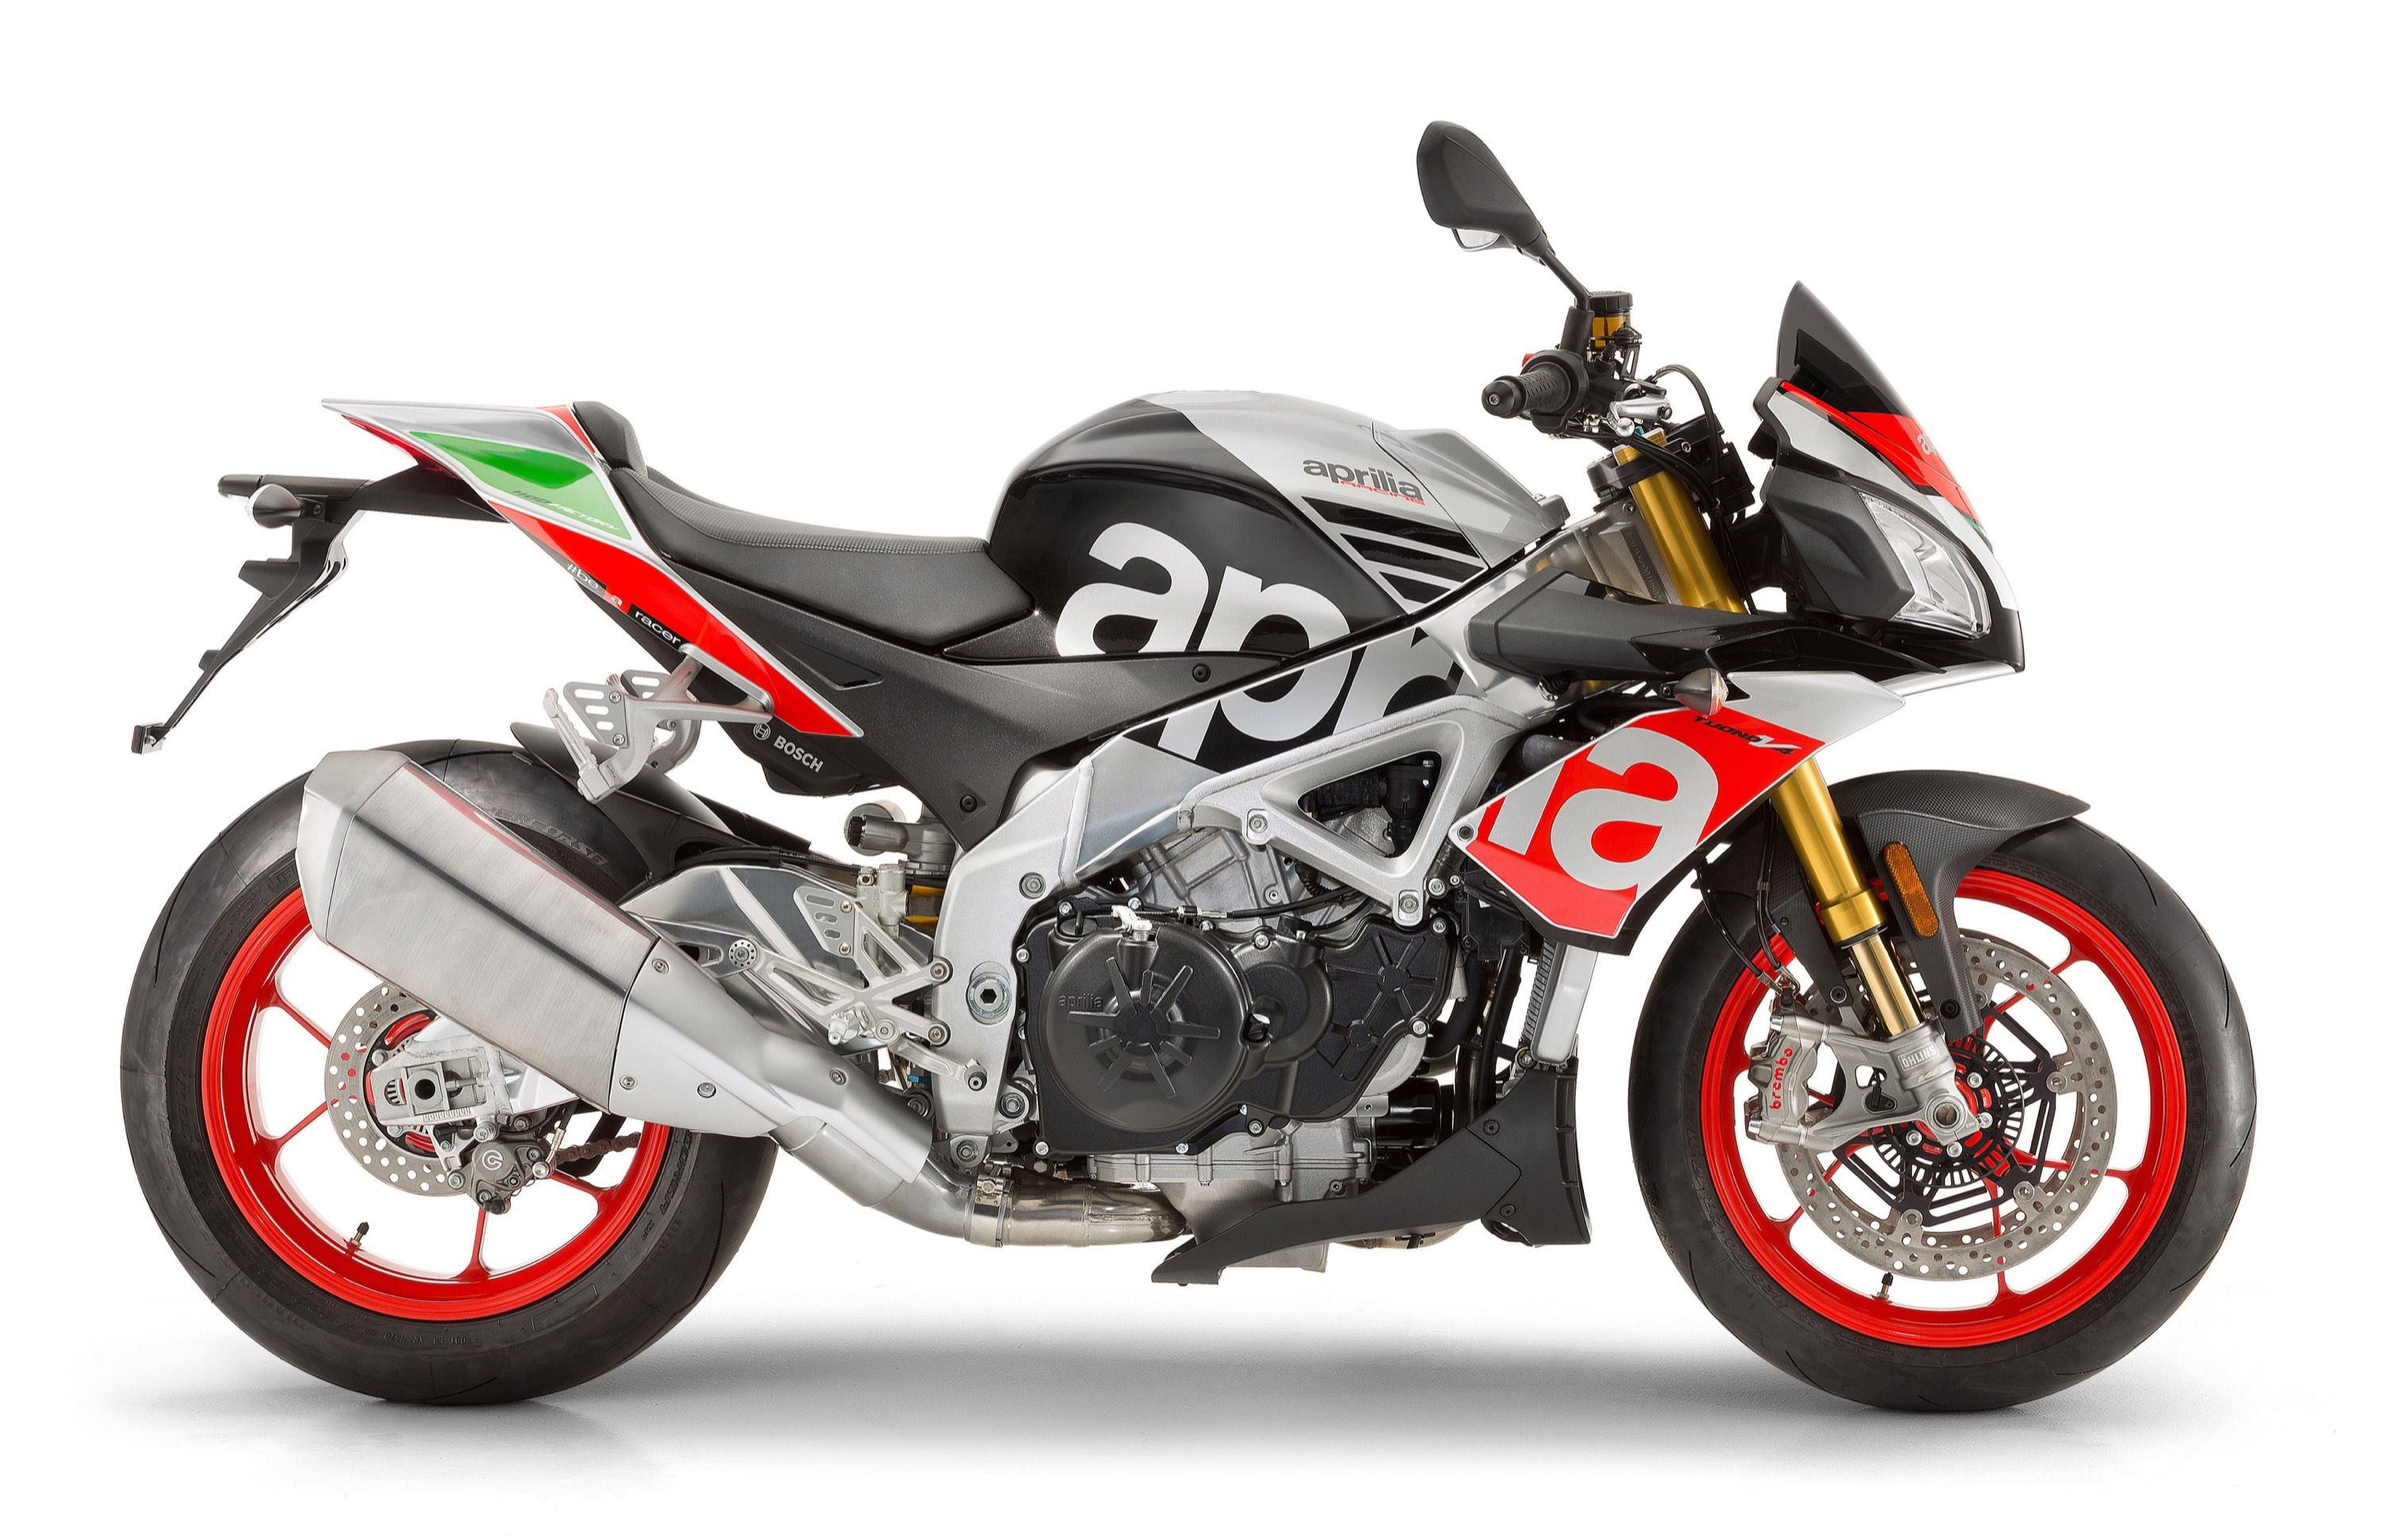 The 2017 Aprilia Tuono V4 1100 Rr And V4 1100 Factory Get Updated Electronics And More Cycle World